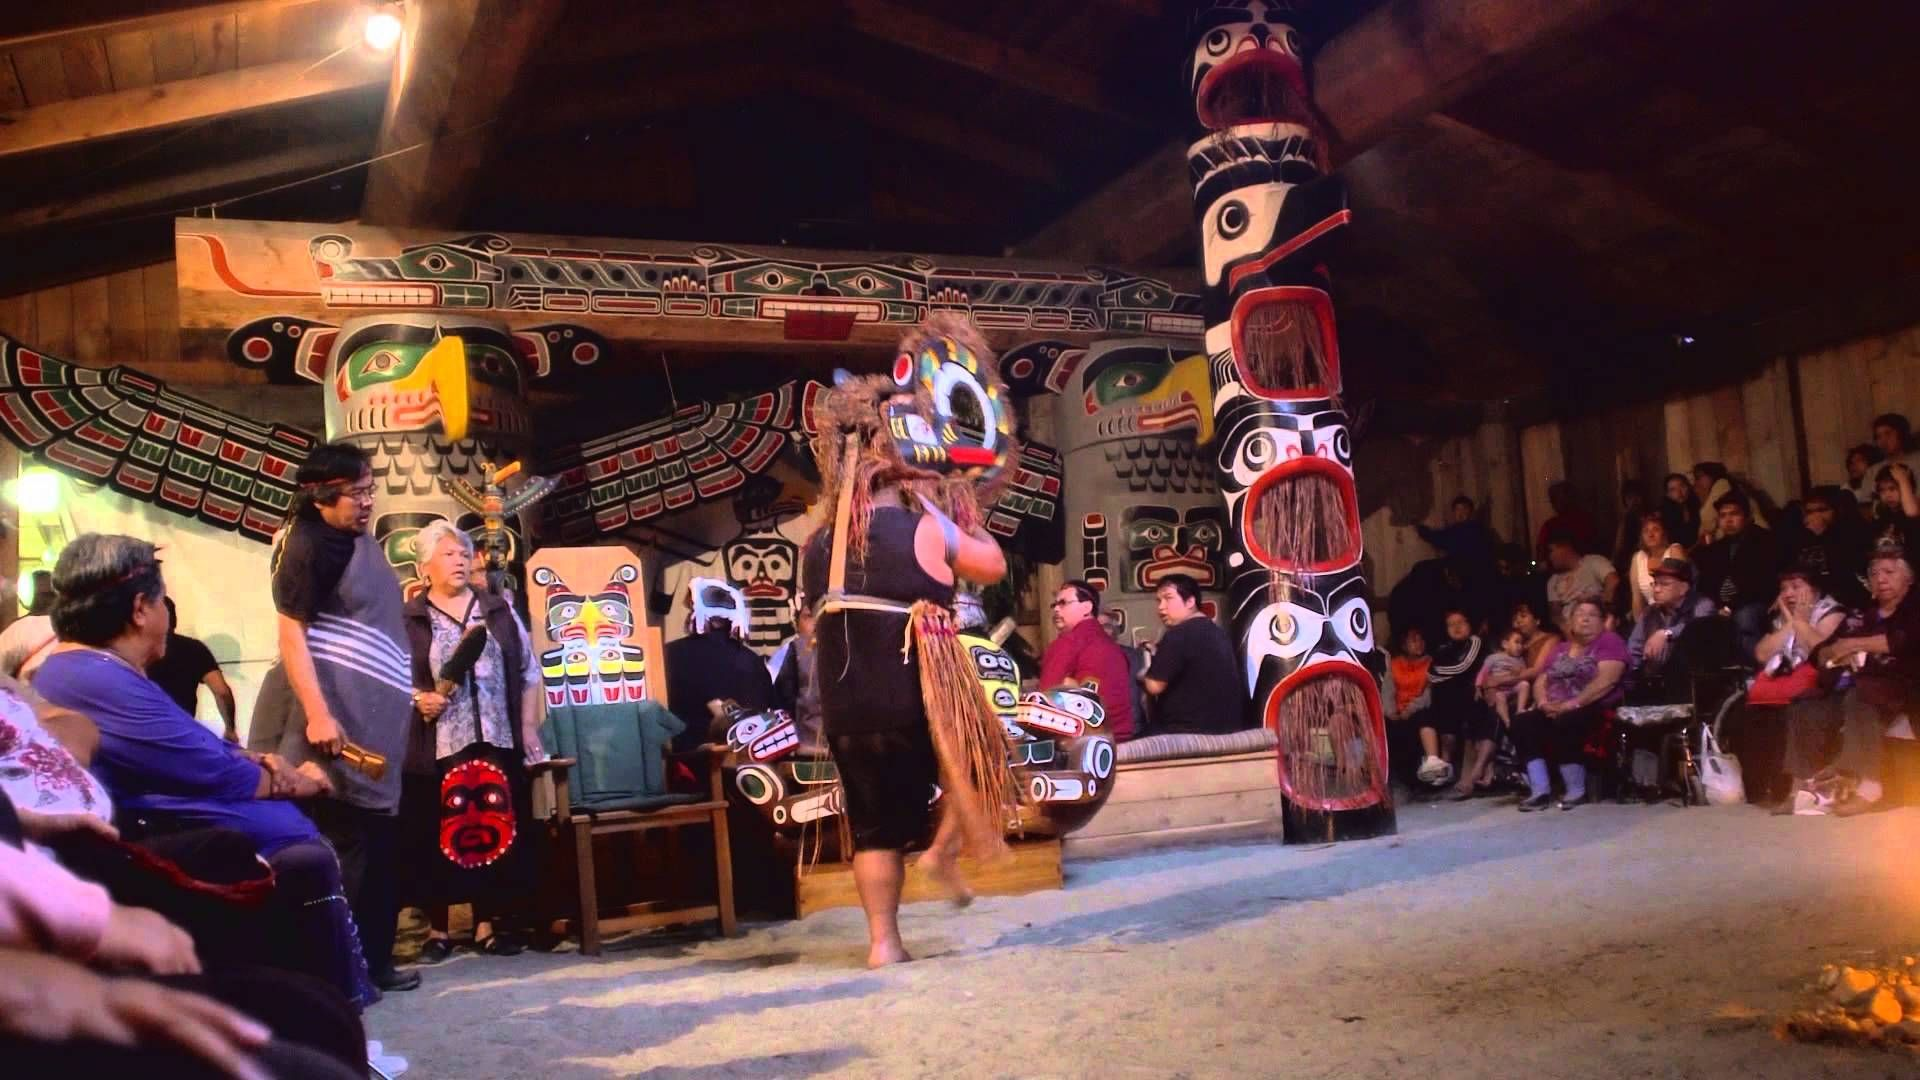 Potlatch In New Vancouver